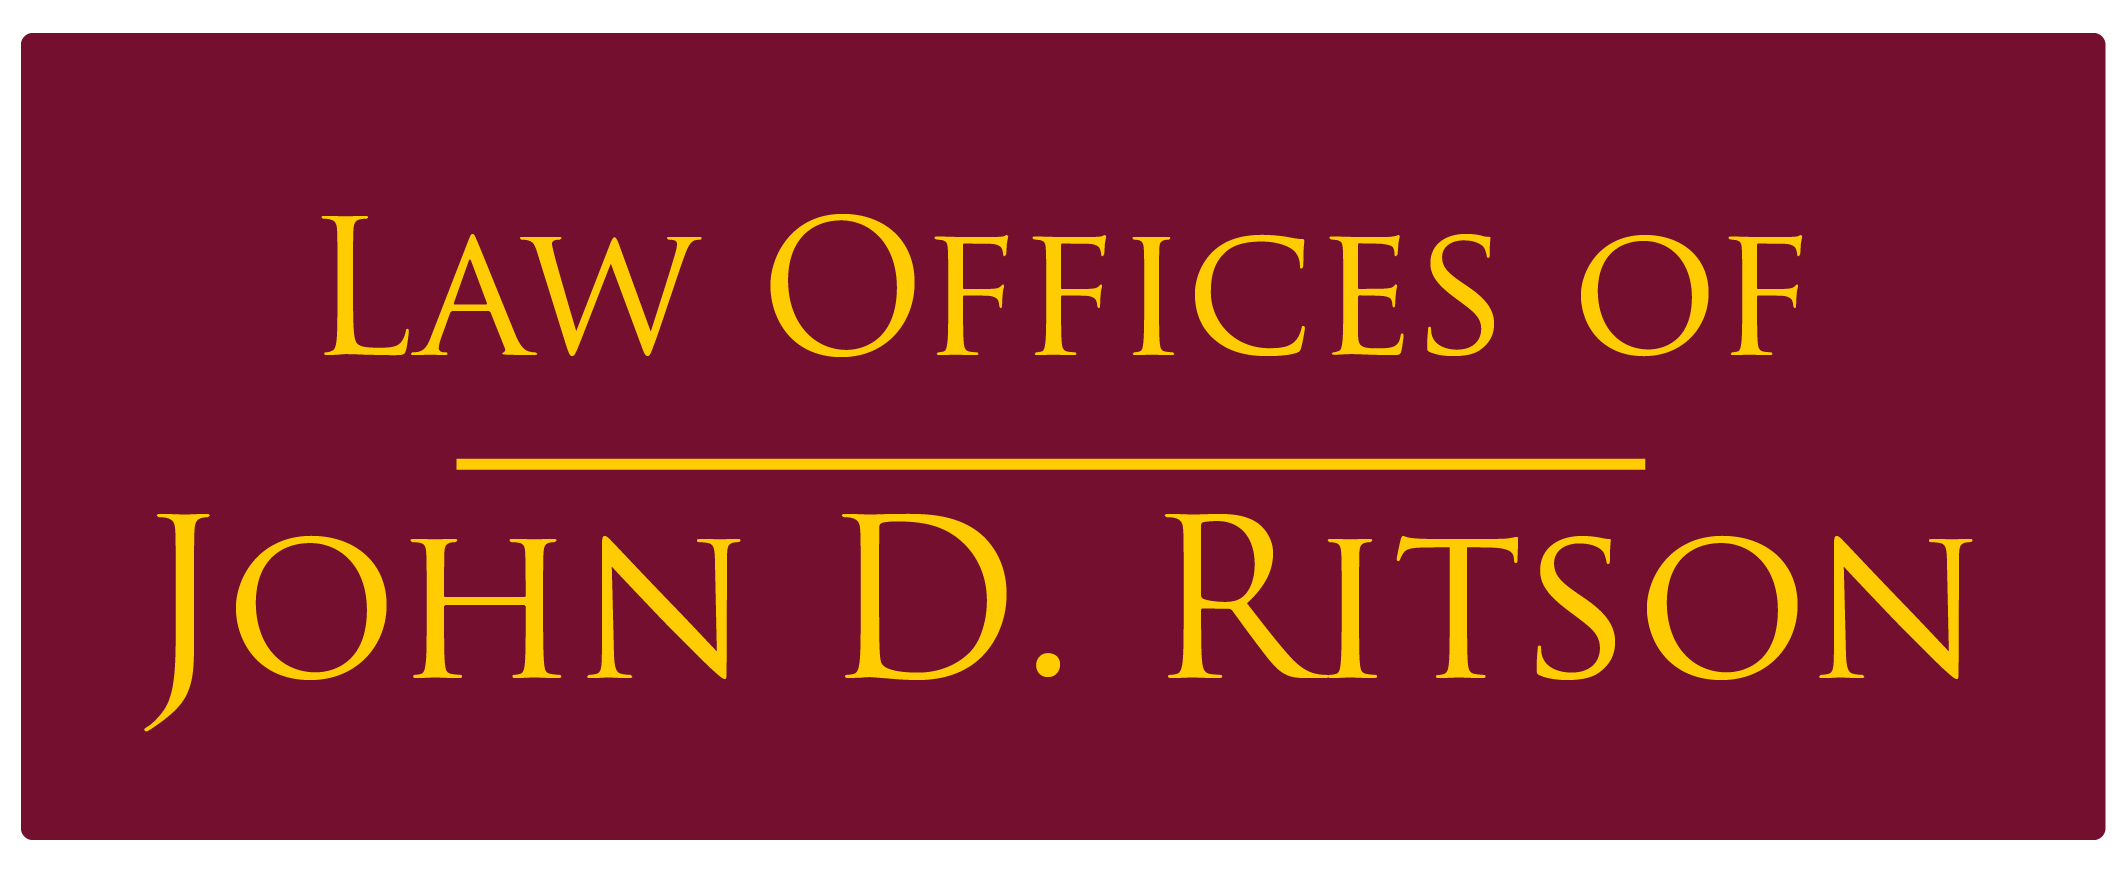 Law Offices of John D. Ritson